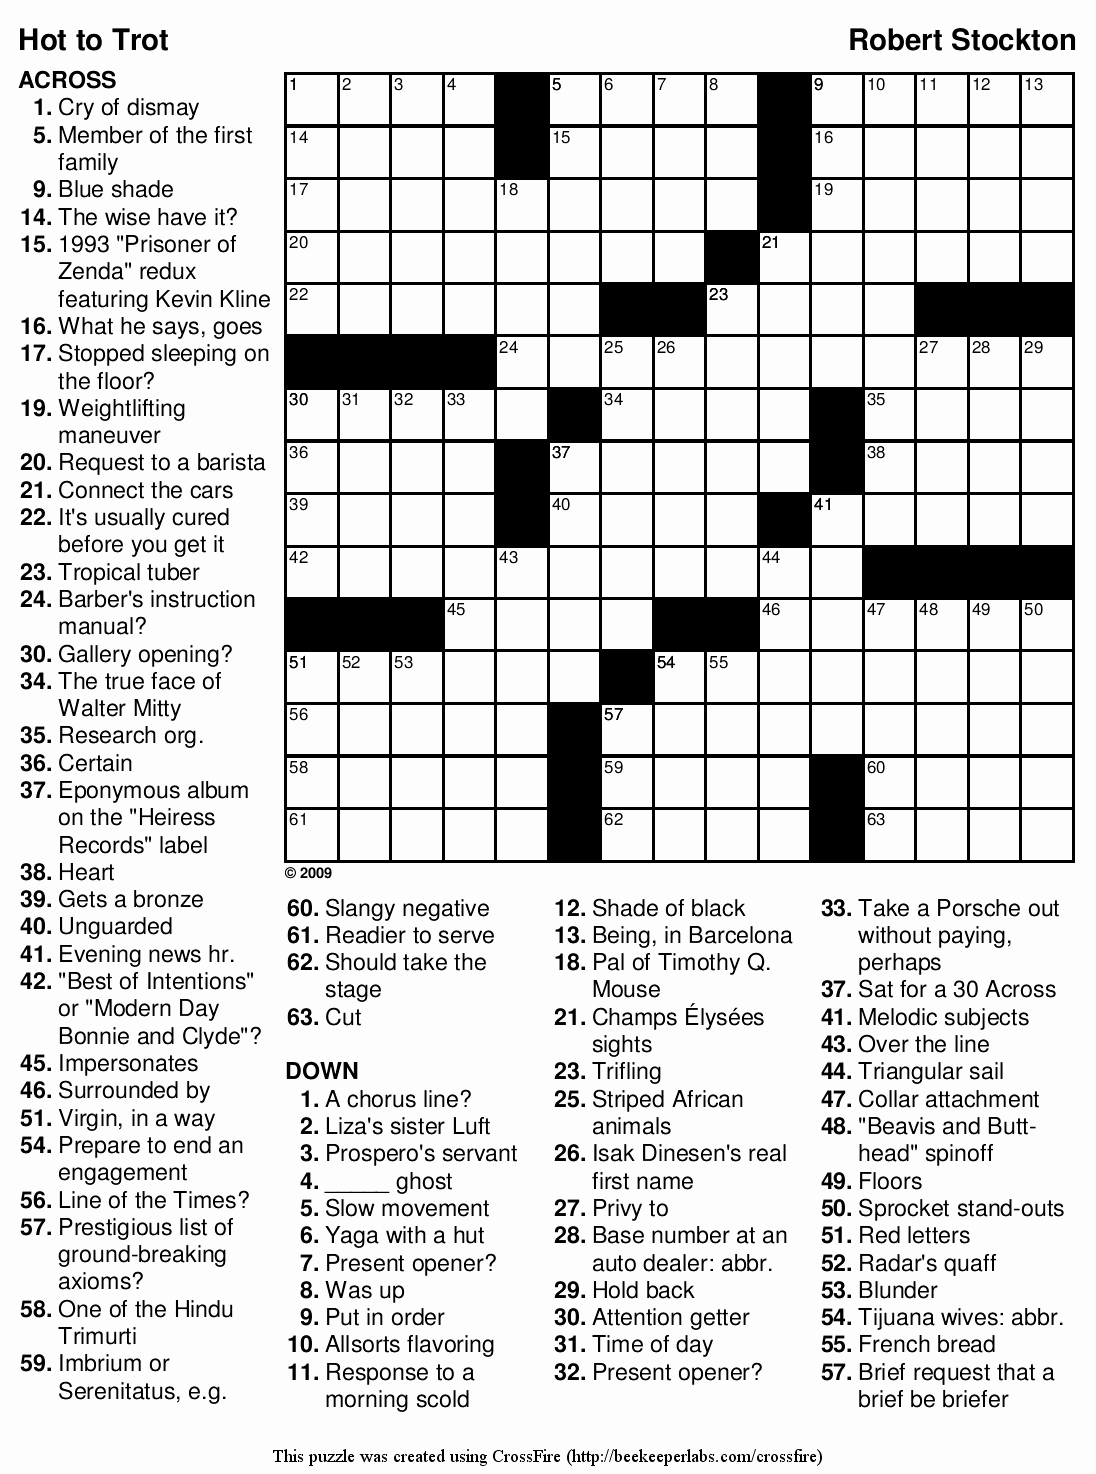 Daily Crossword Puzzle Printable – Rtrs.online - Medium Difficulty Printable Crossword Puzzles